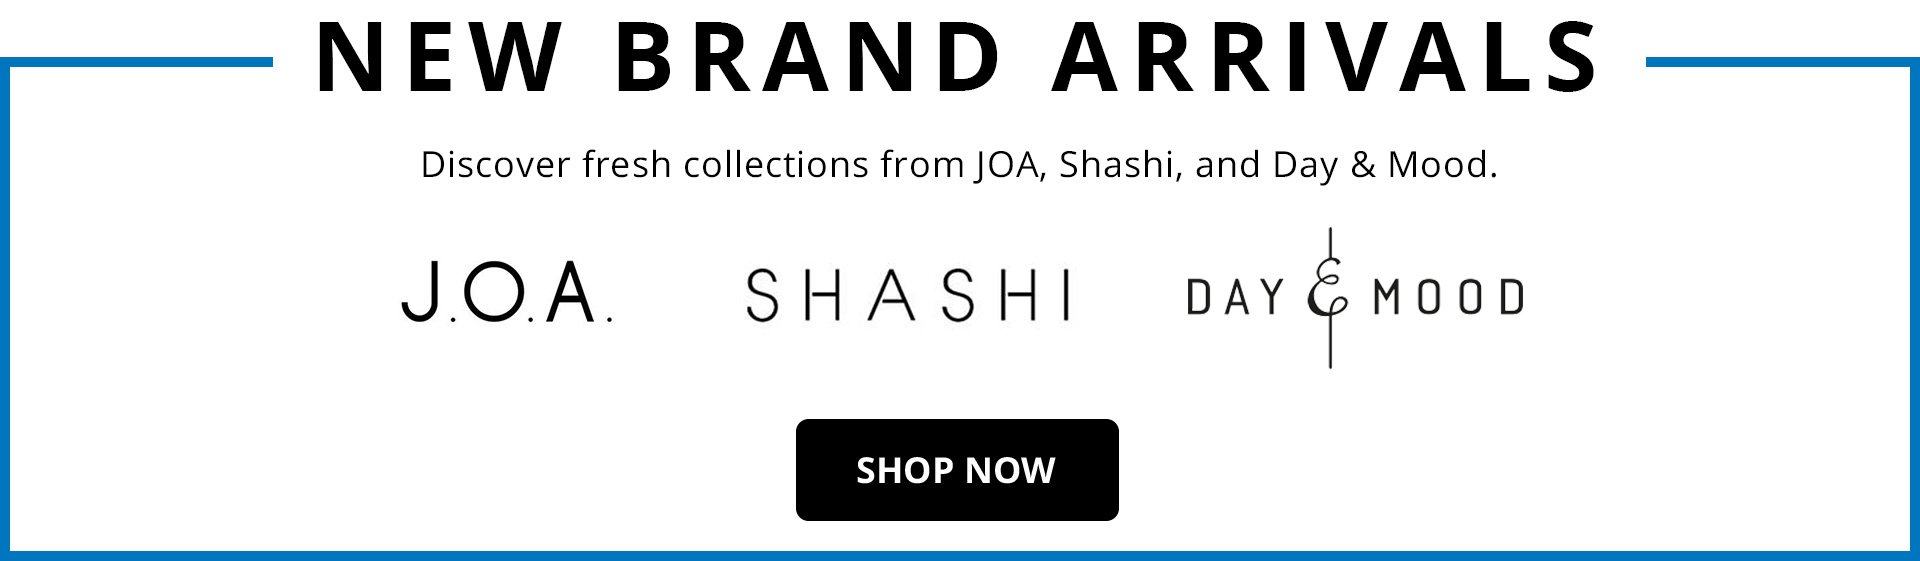 New Brand Arrivals Banner. J.O.A., SHASHI  and Day&Mood.